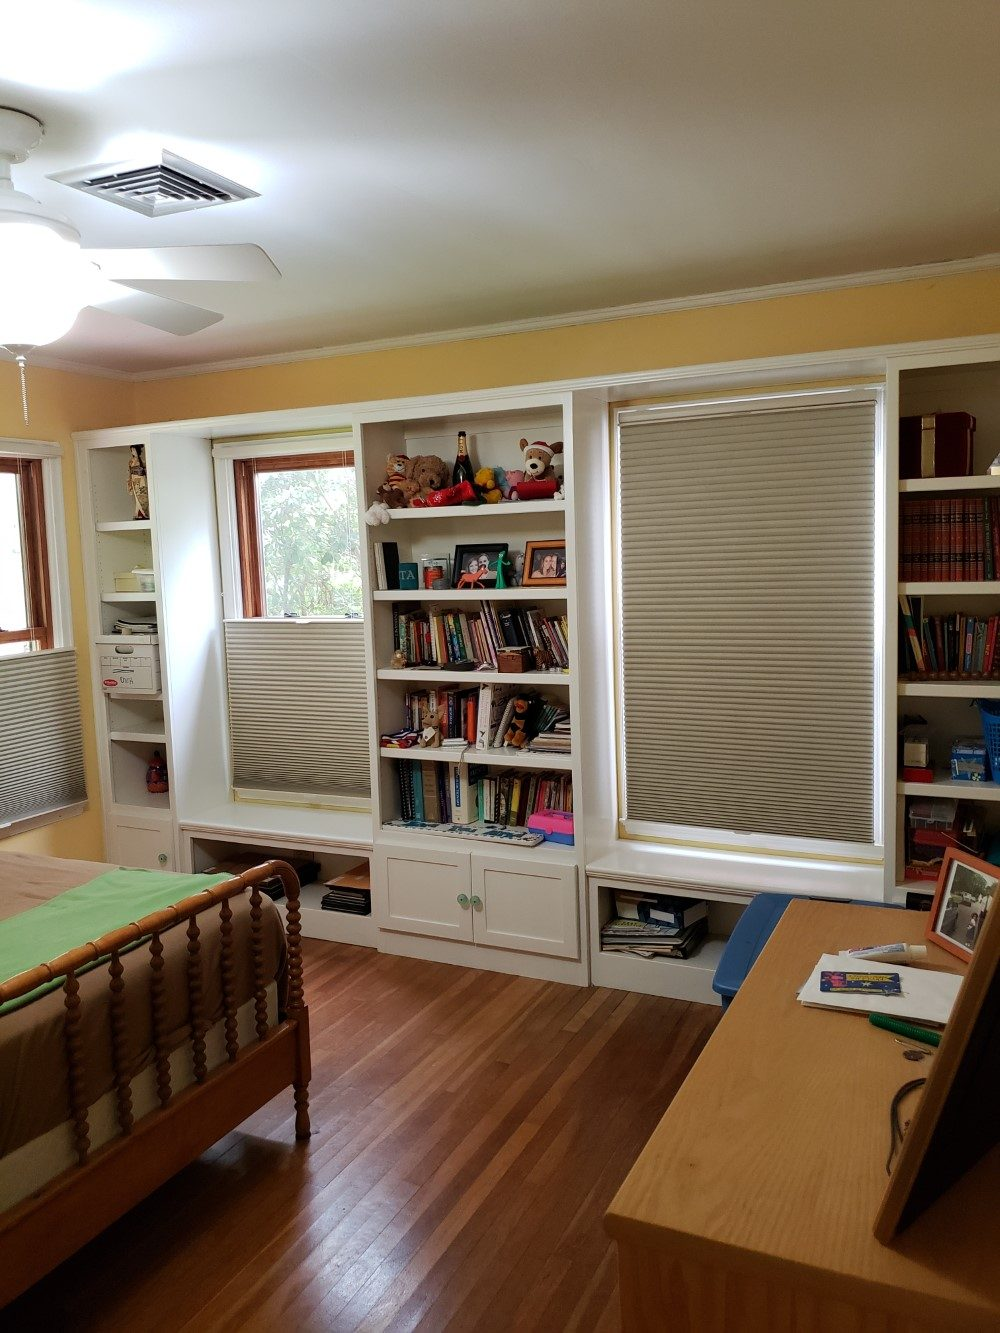 Latest Projects - Hunter Douglas Top Down/ Bottom Up Duette Cellular shades in Kerrville, TX